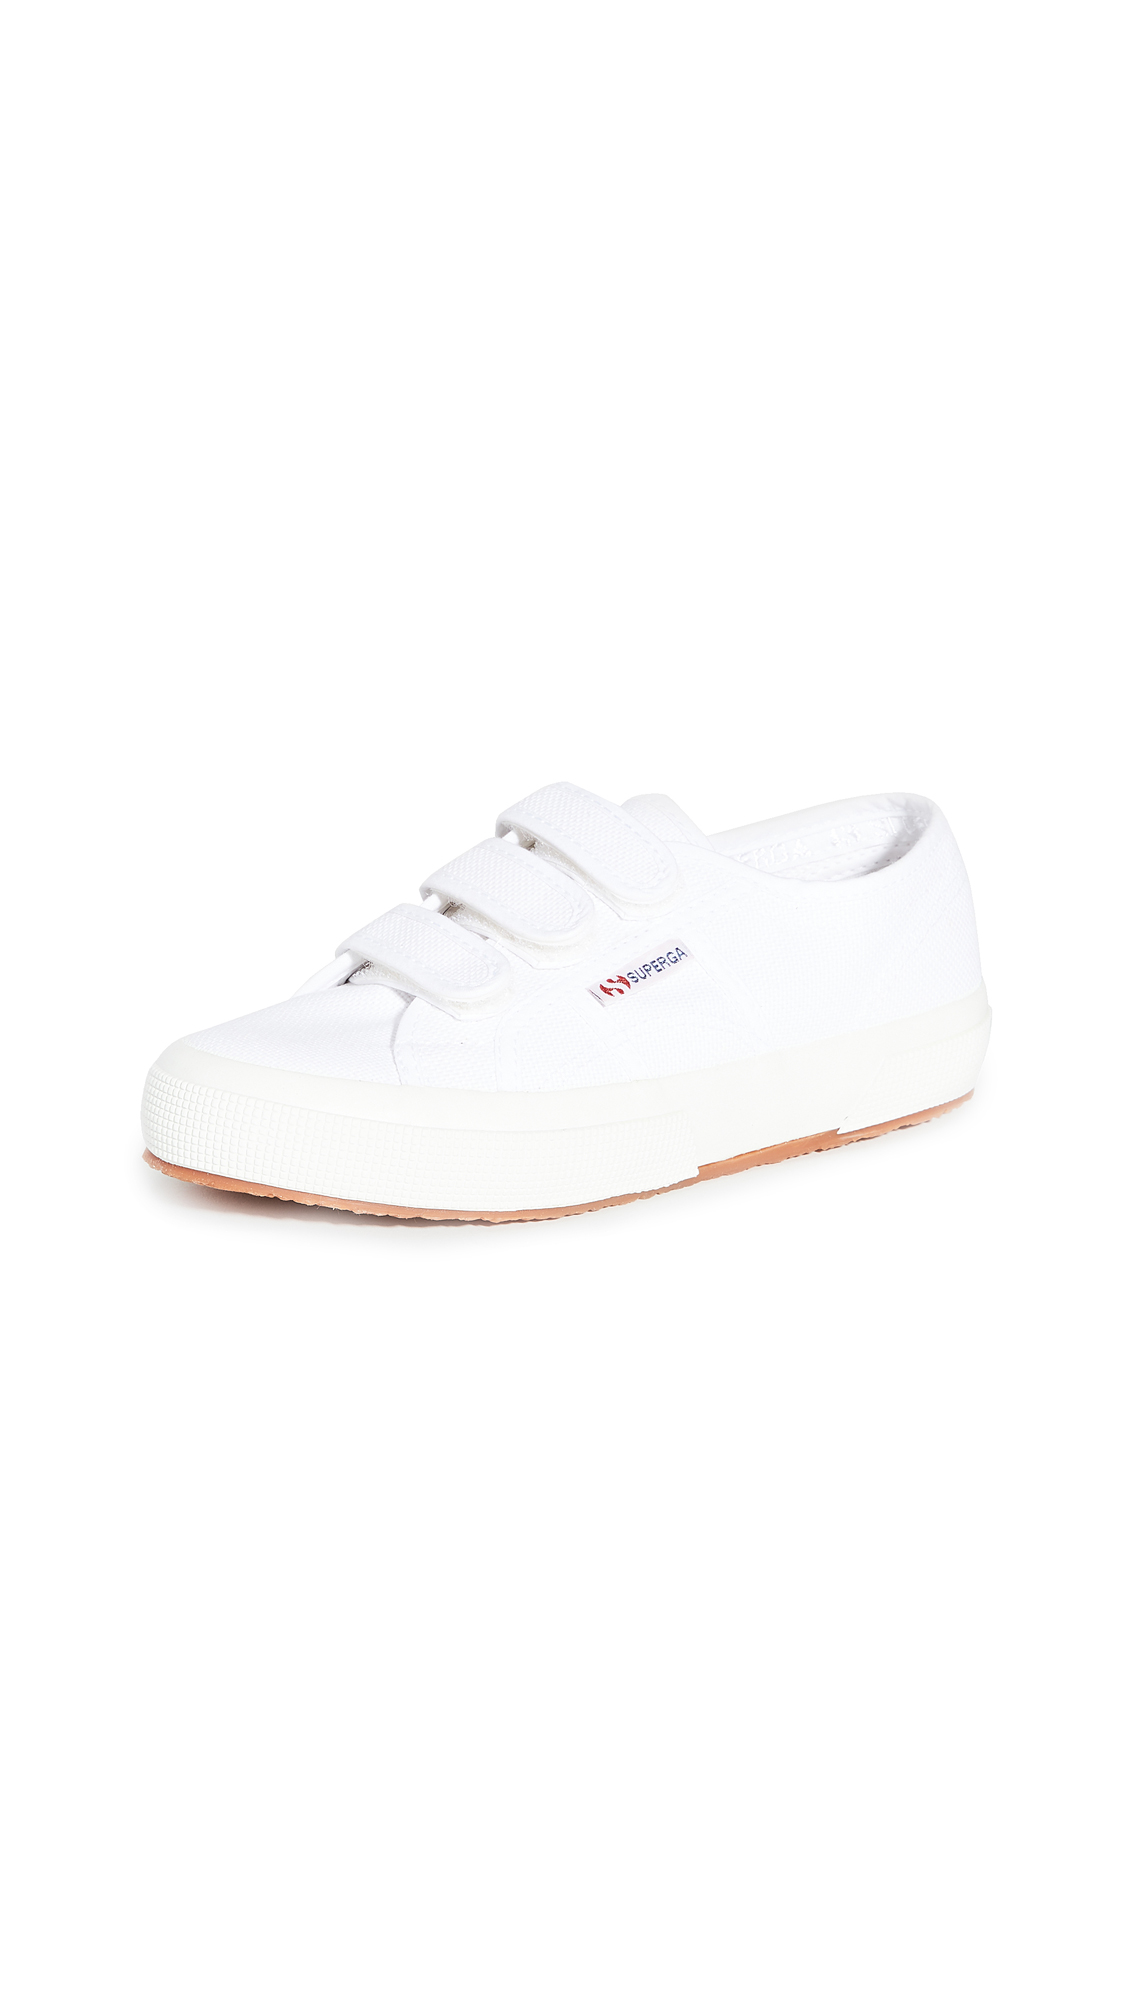 Superga 2750 Sneakers